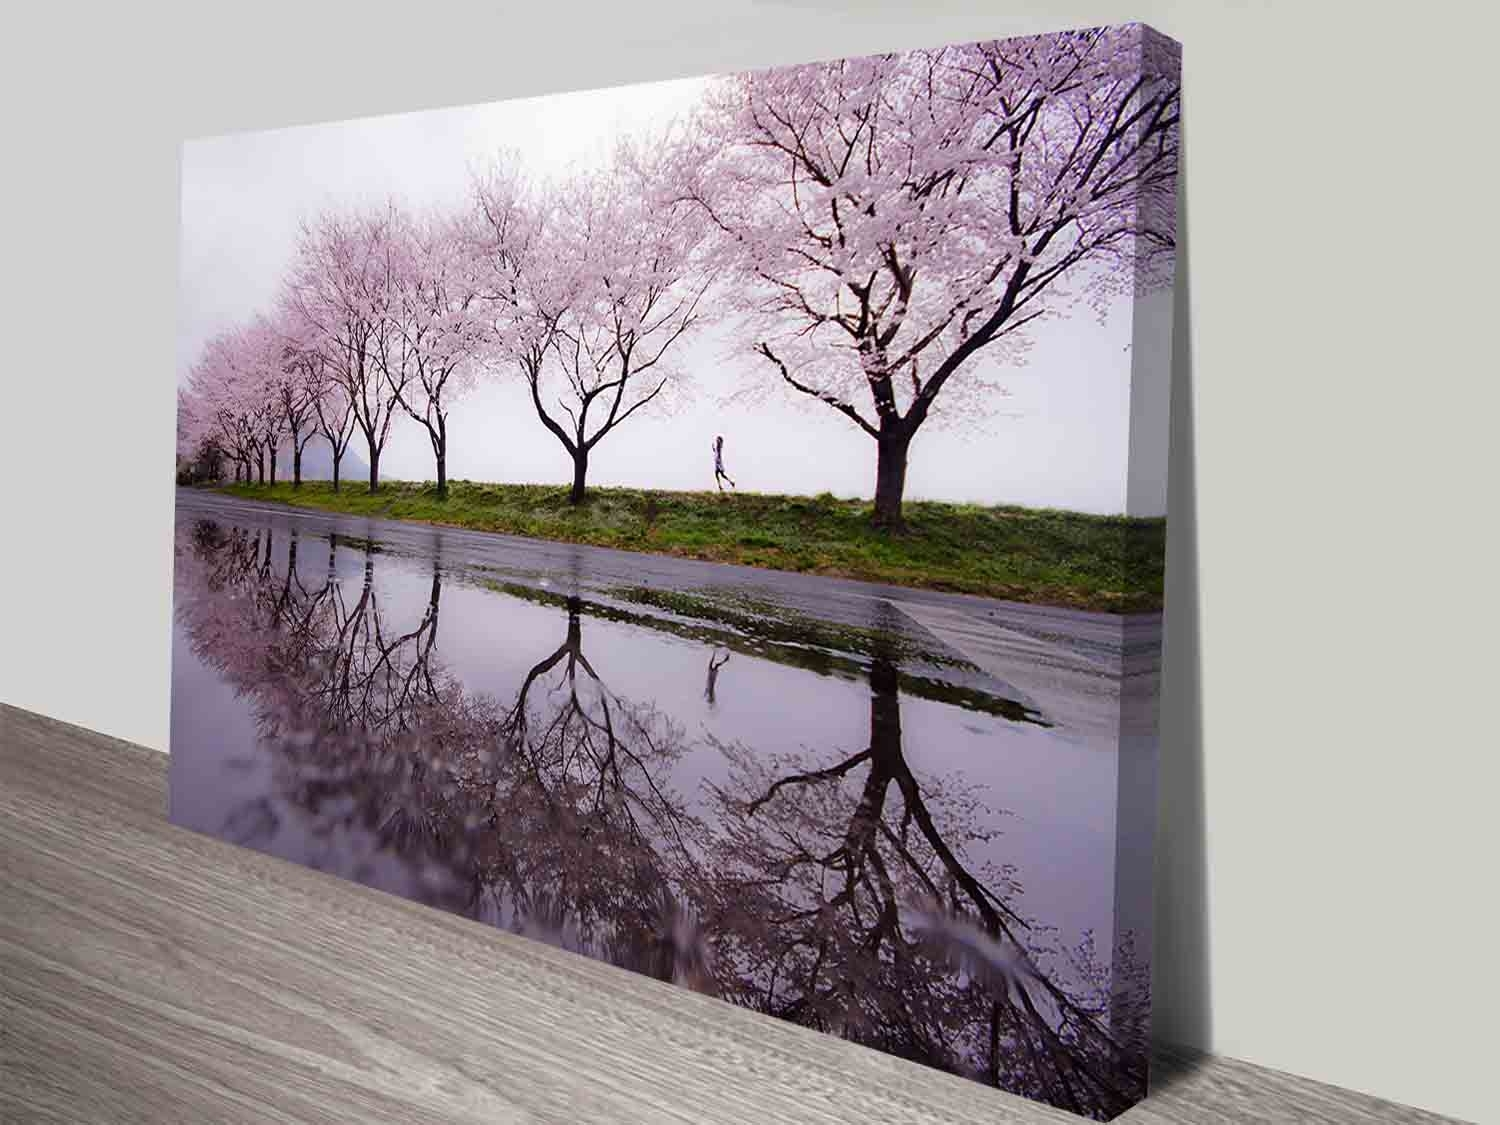 Photos On Canvas Melbourne | Perfect Gift Ideas For Dad In Latest Canvas Wall Art In Melbourne (View 11 of 15)